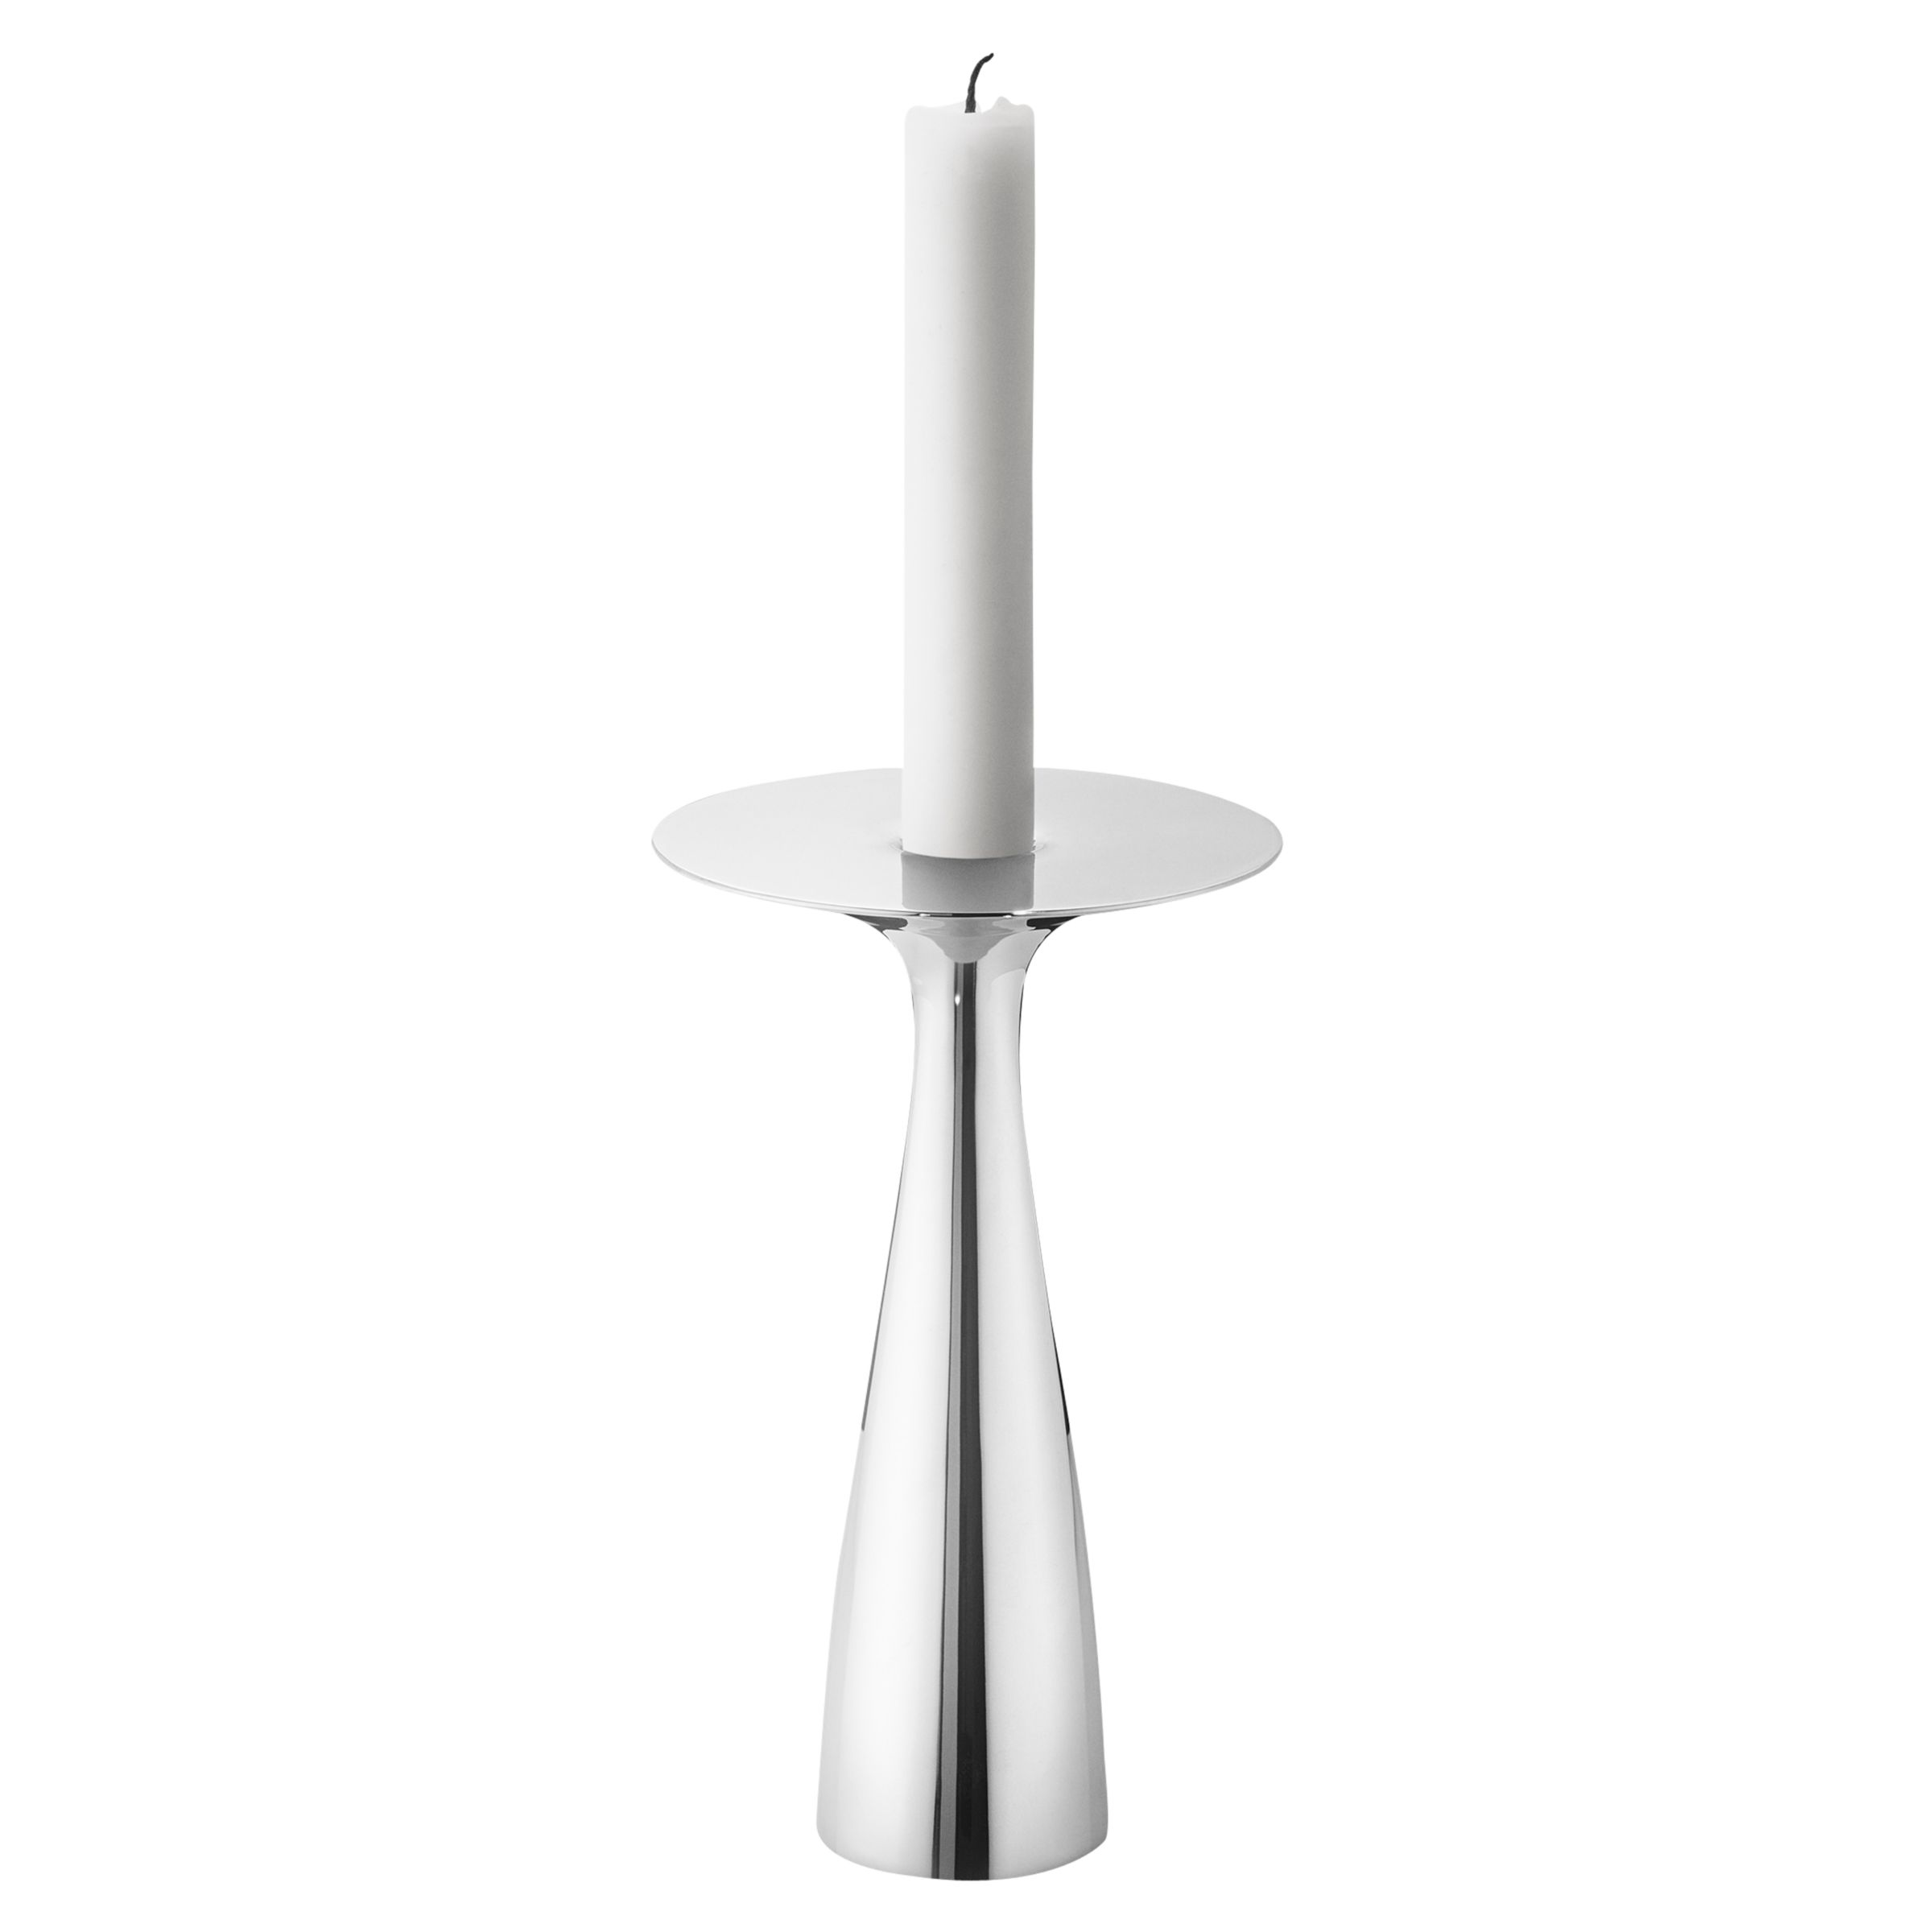 Georg Jensen Georg Jensen Alfredo Candlestick Holder, Large